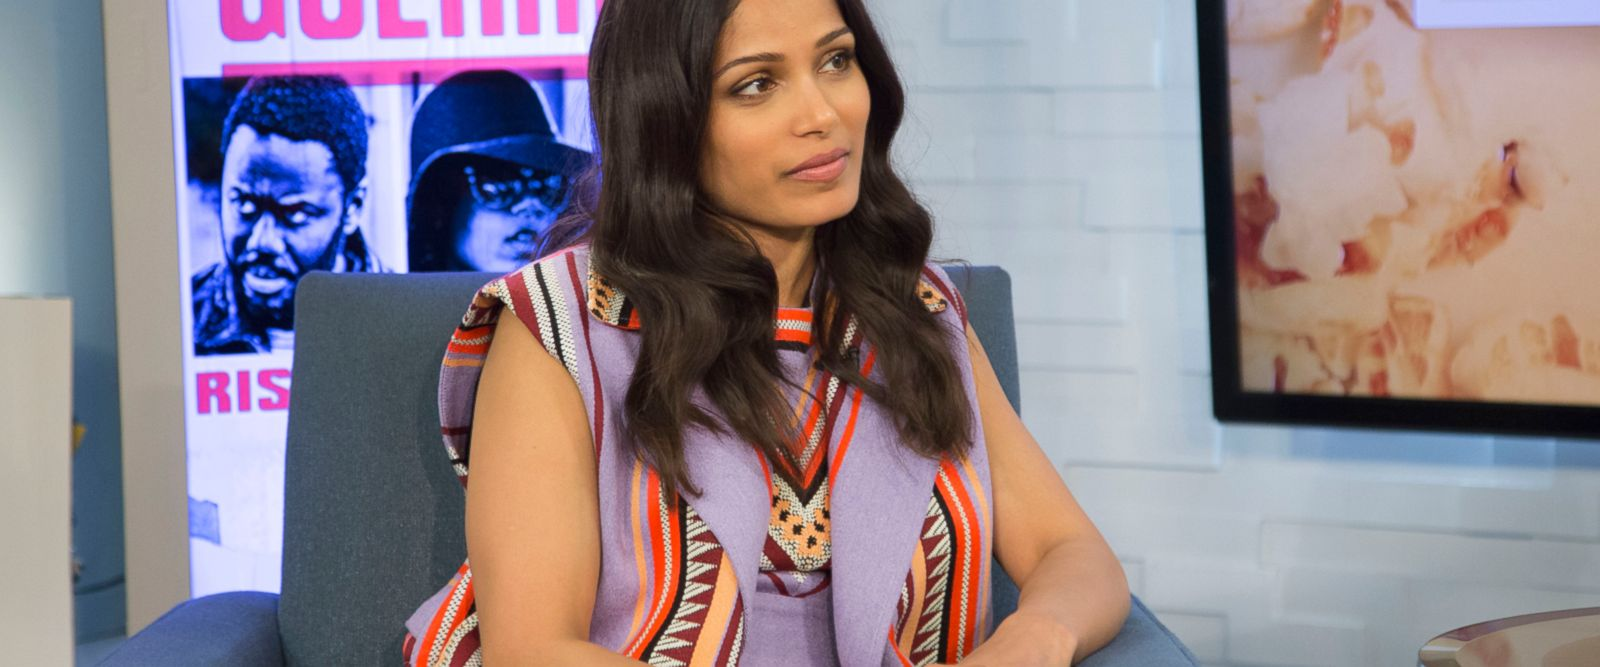 VIDEO: Freida Pinto sings the Kingston Trio's classic folk song 'Hang Down Your Head Tom Dooley'